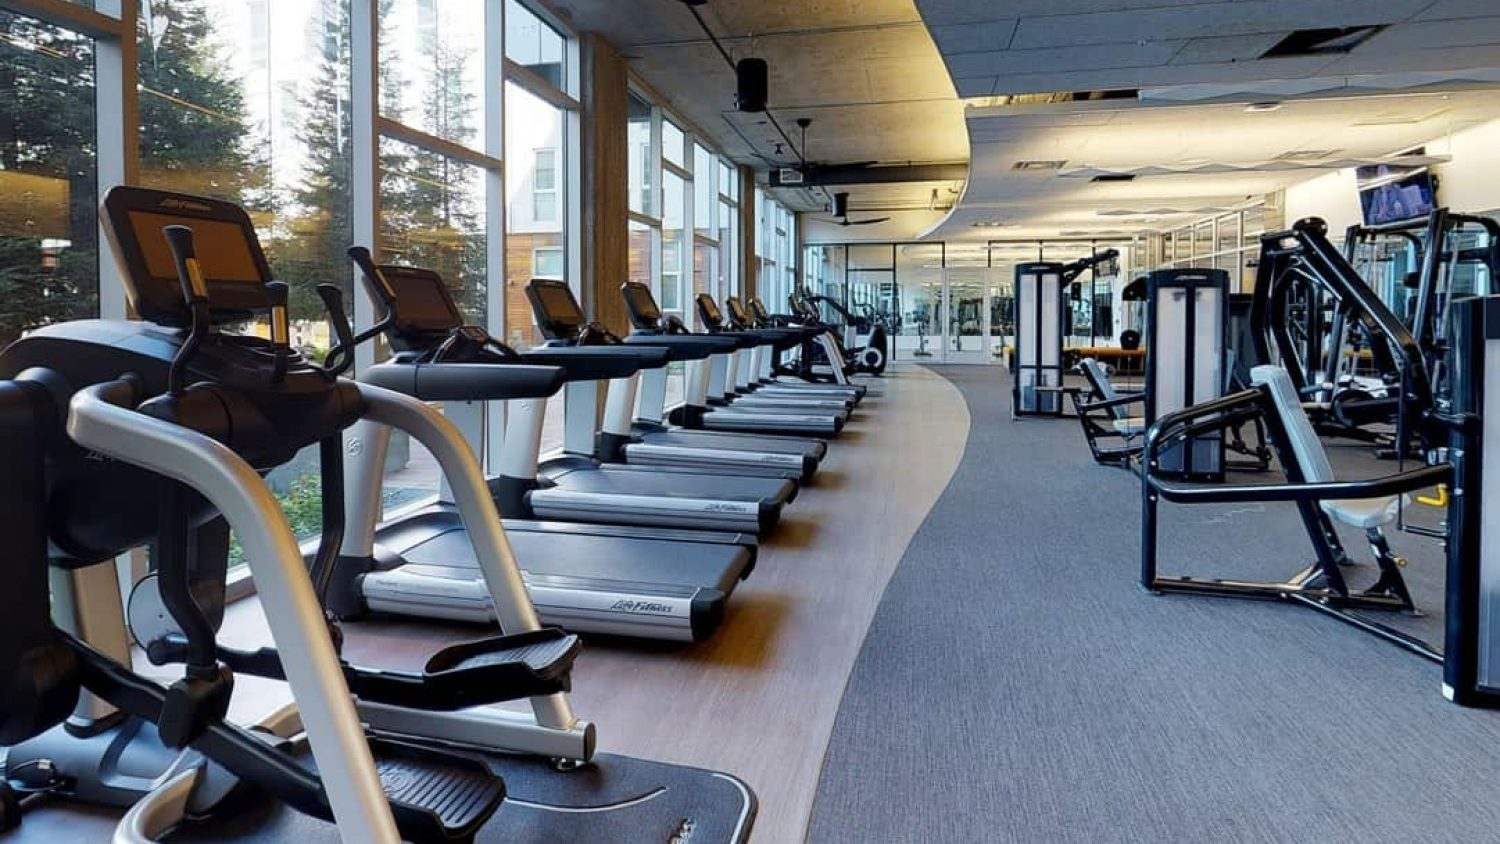 The Ultimate Guide of Treadmill or Cross Trainer Which Is Better?